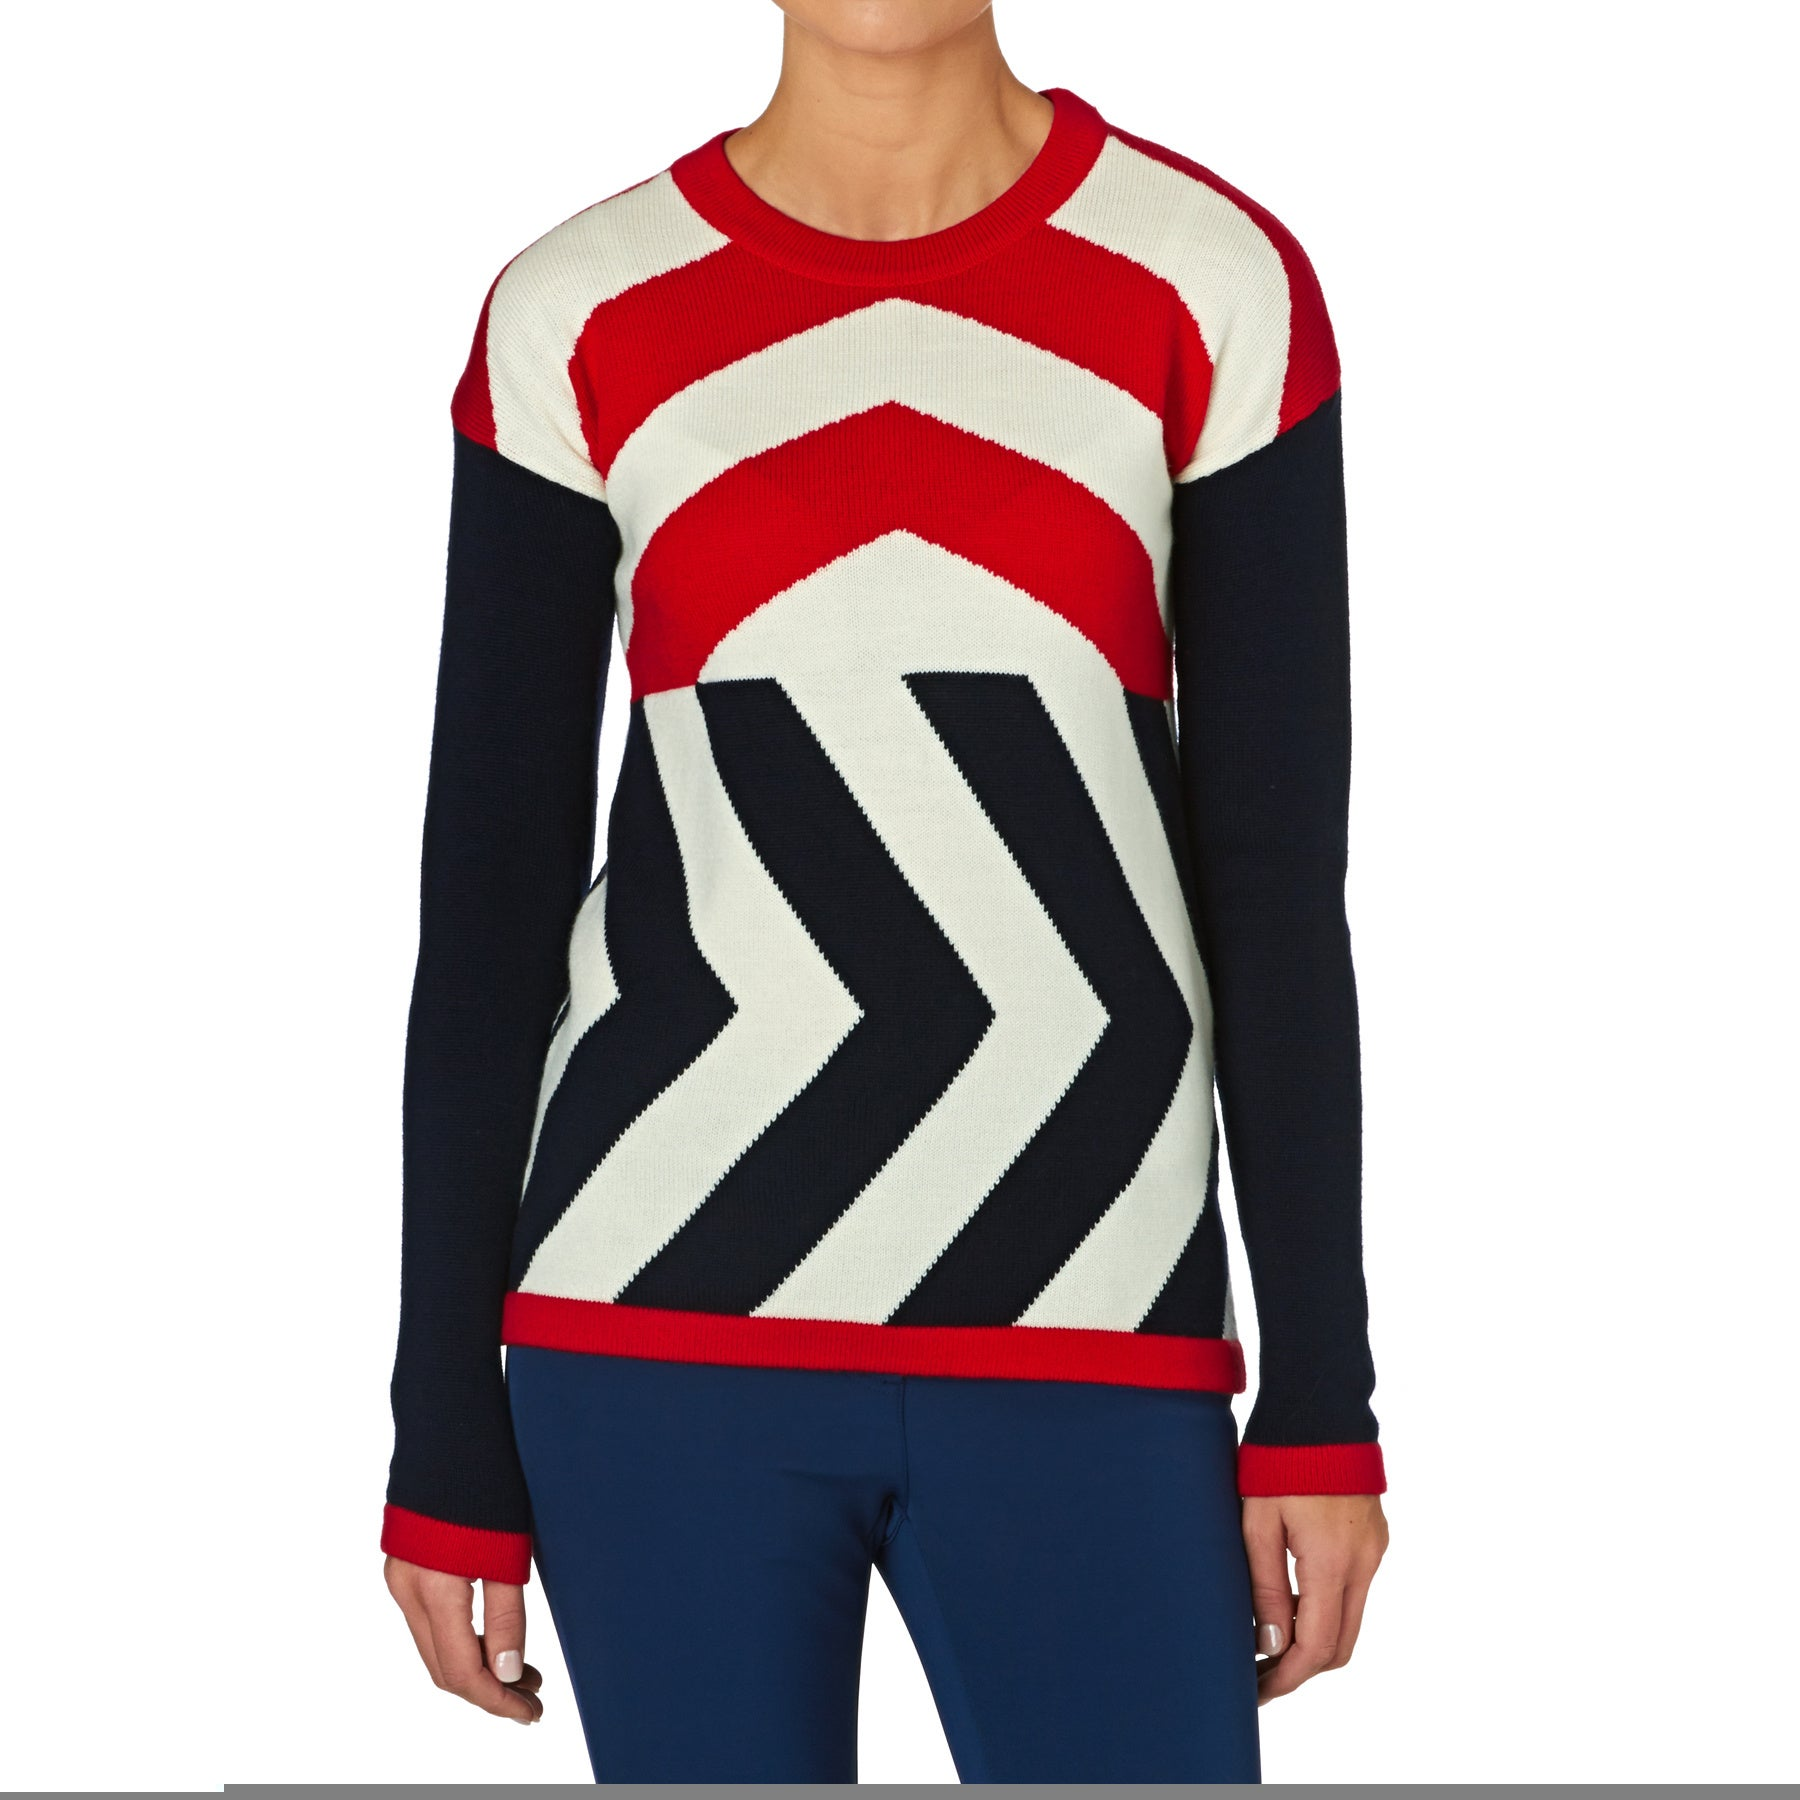 Perfect Moment Glacier Merino Wool Womens Sweater - Red/navy